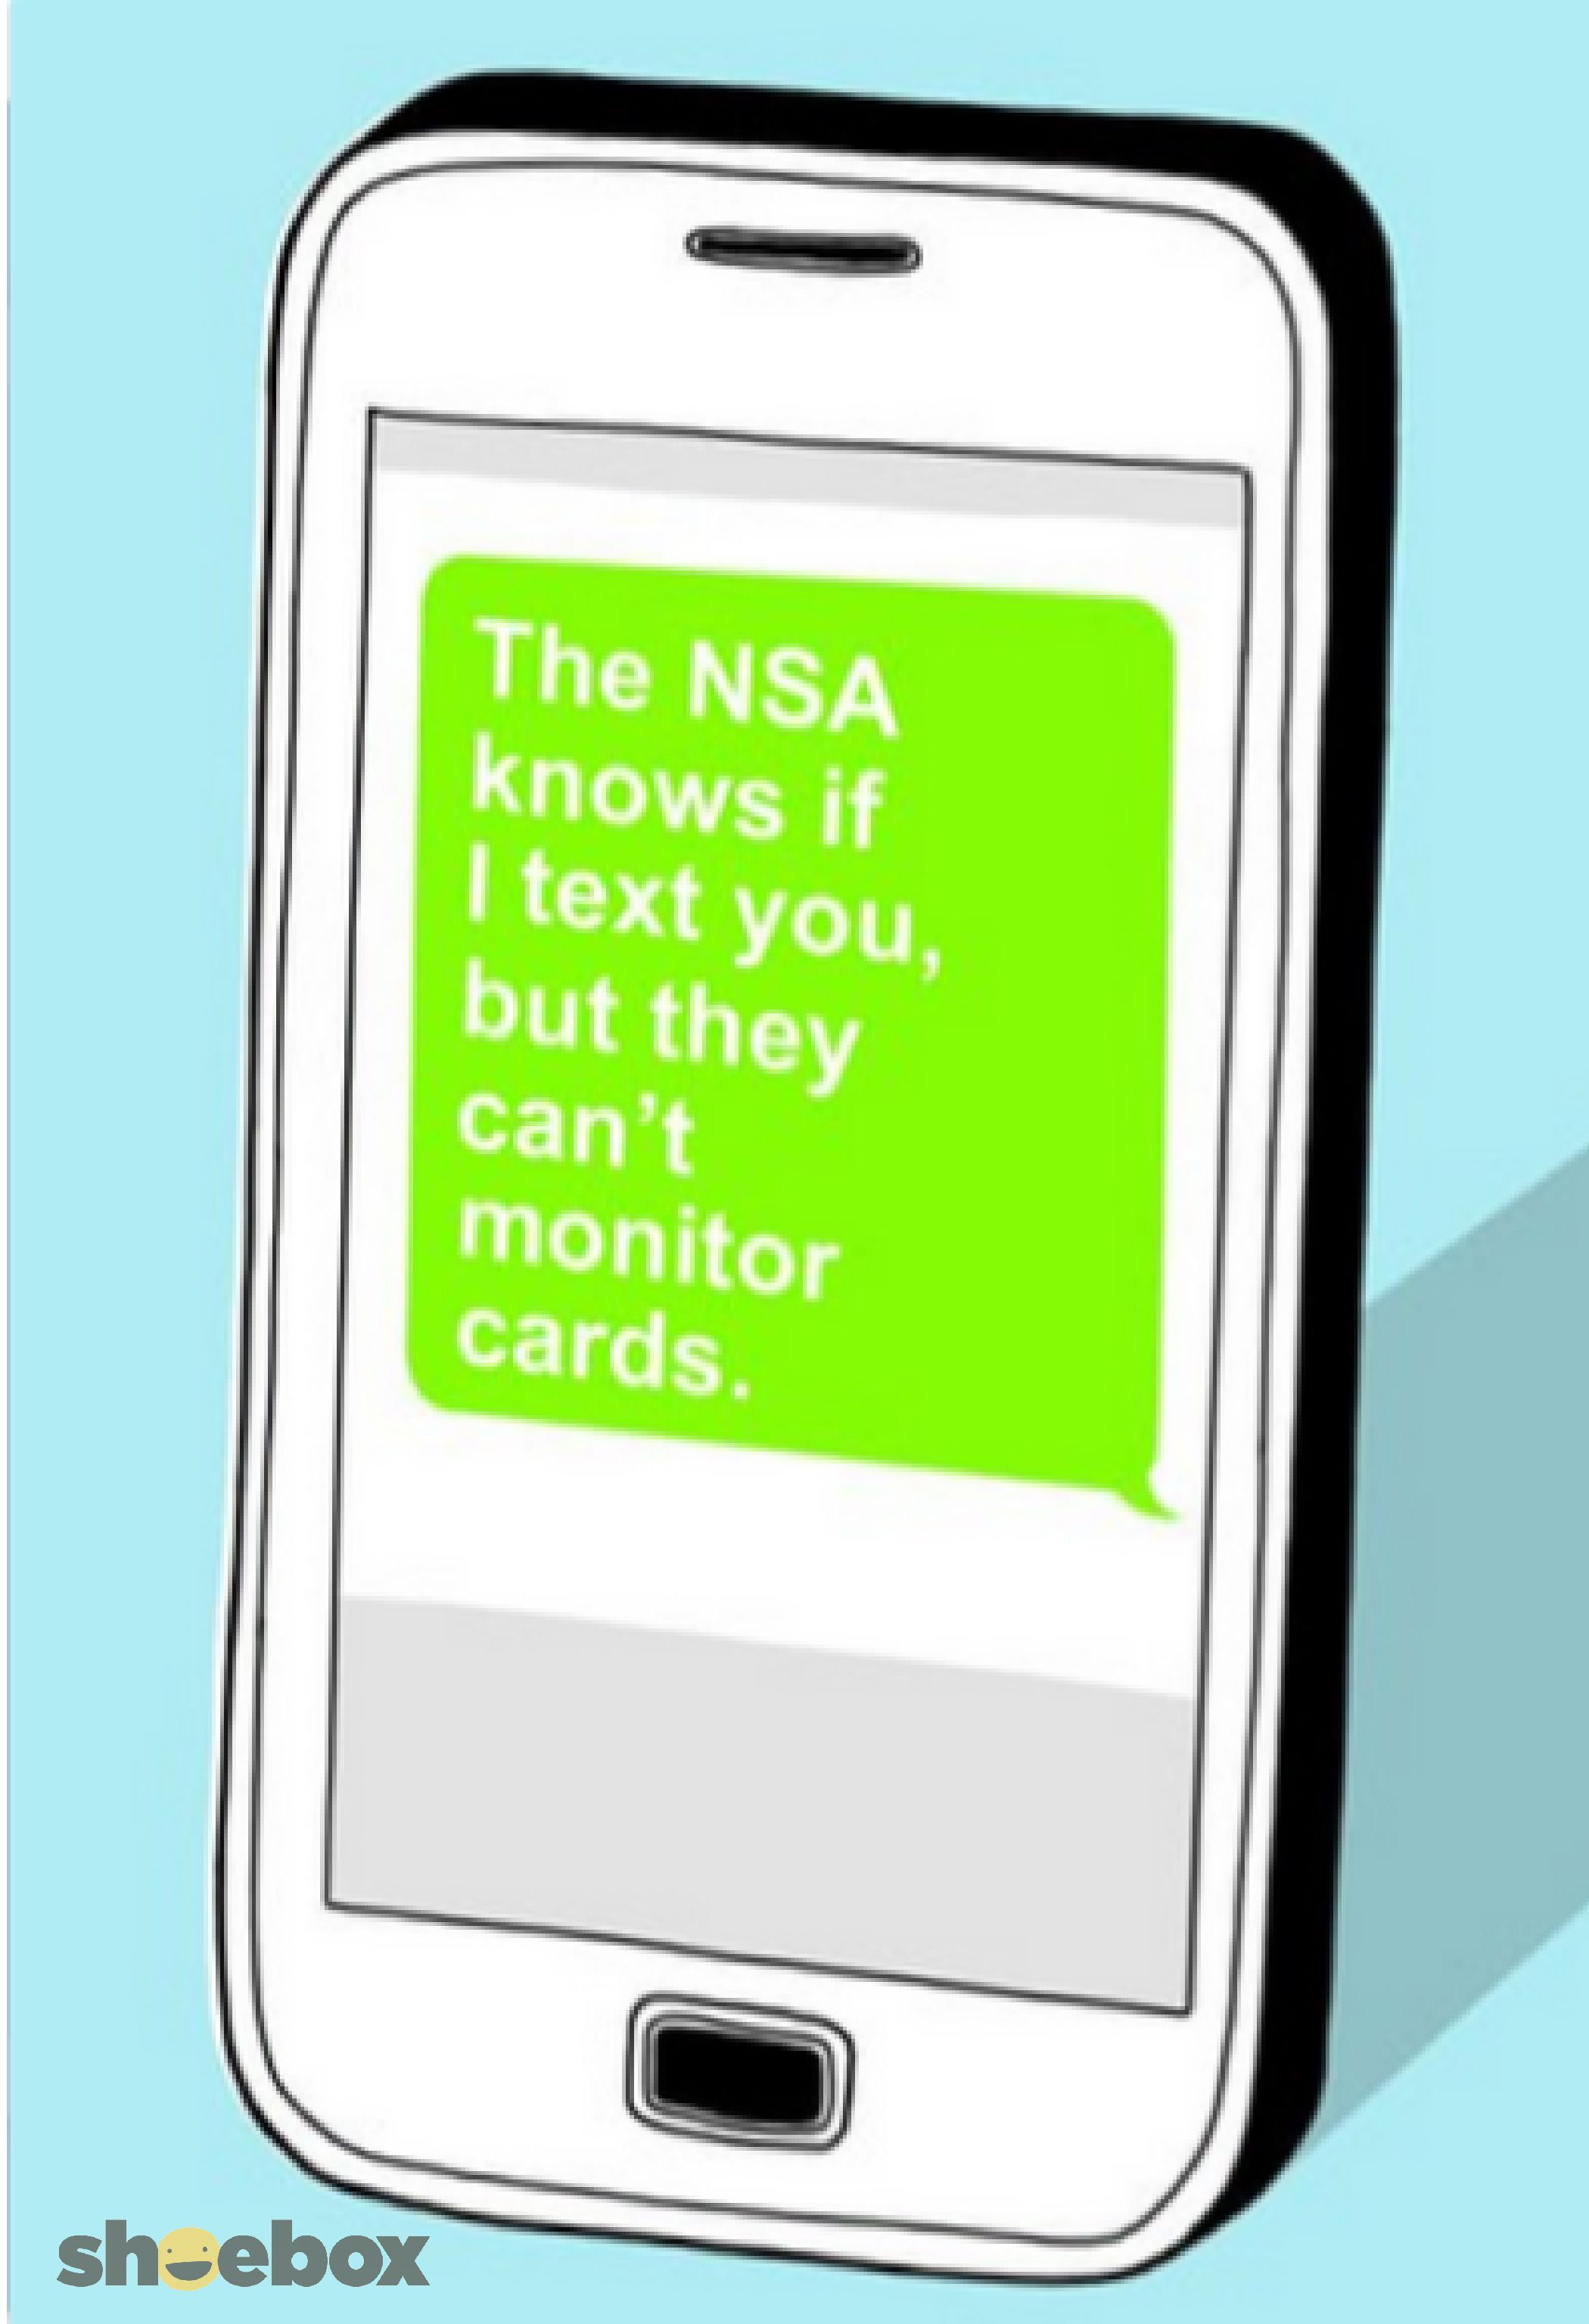 The Nsa Knows If I Text You But They Can T Monitor Cards Don T